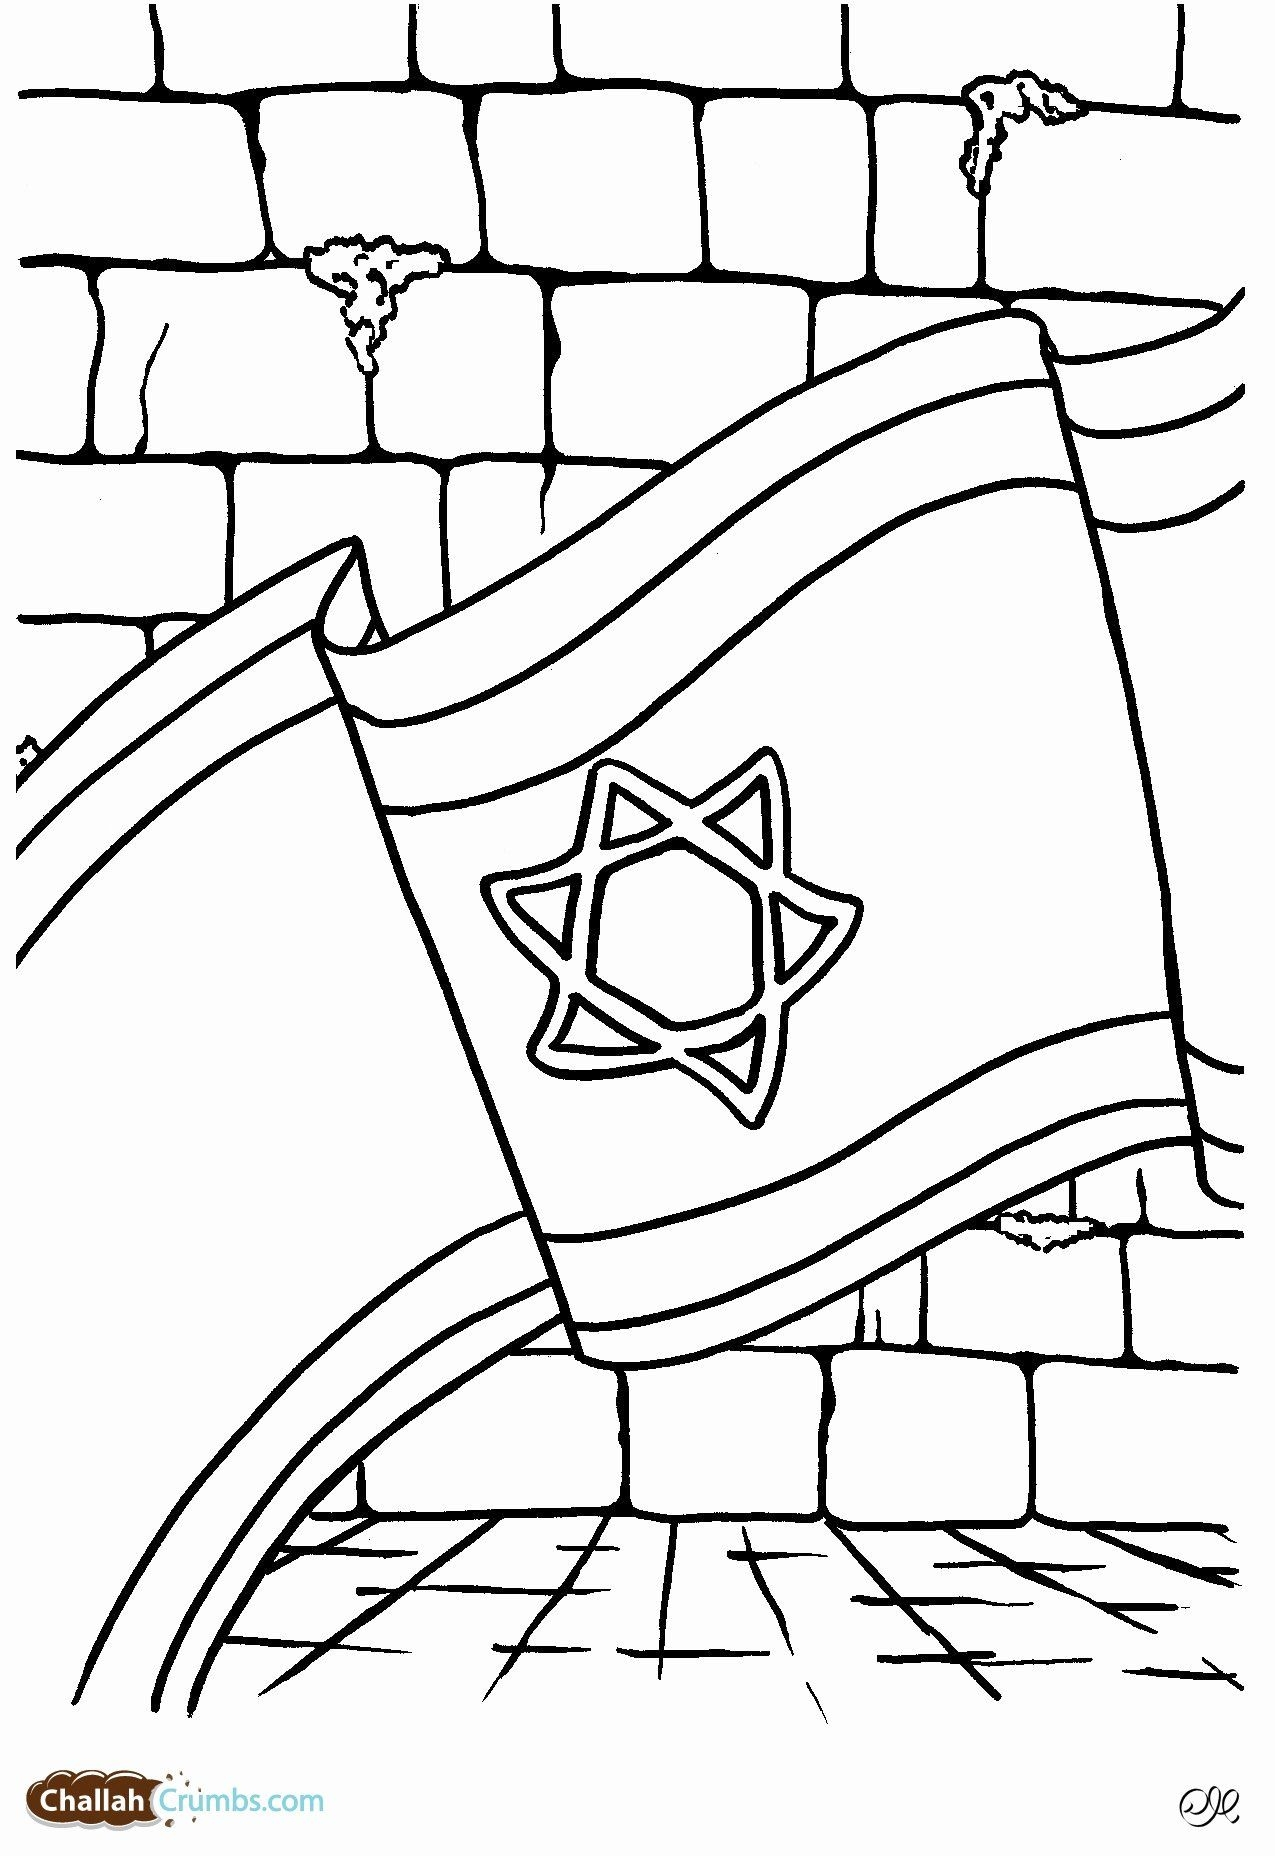 Pakistan Coloring Pages - Drewolanoff.com